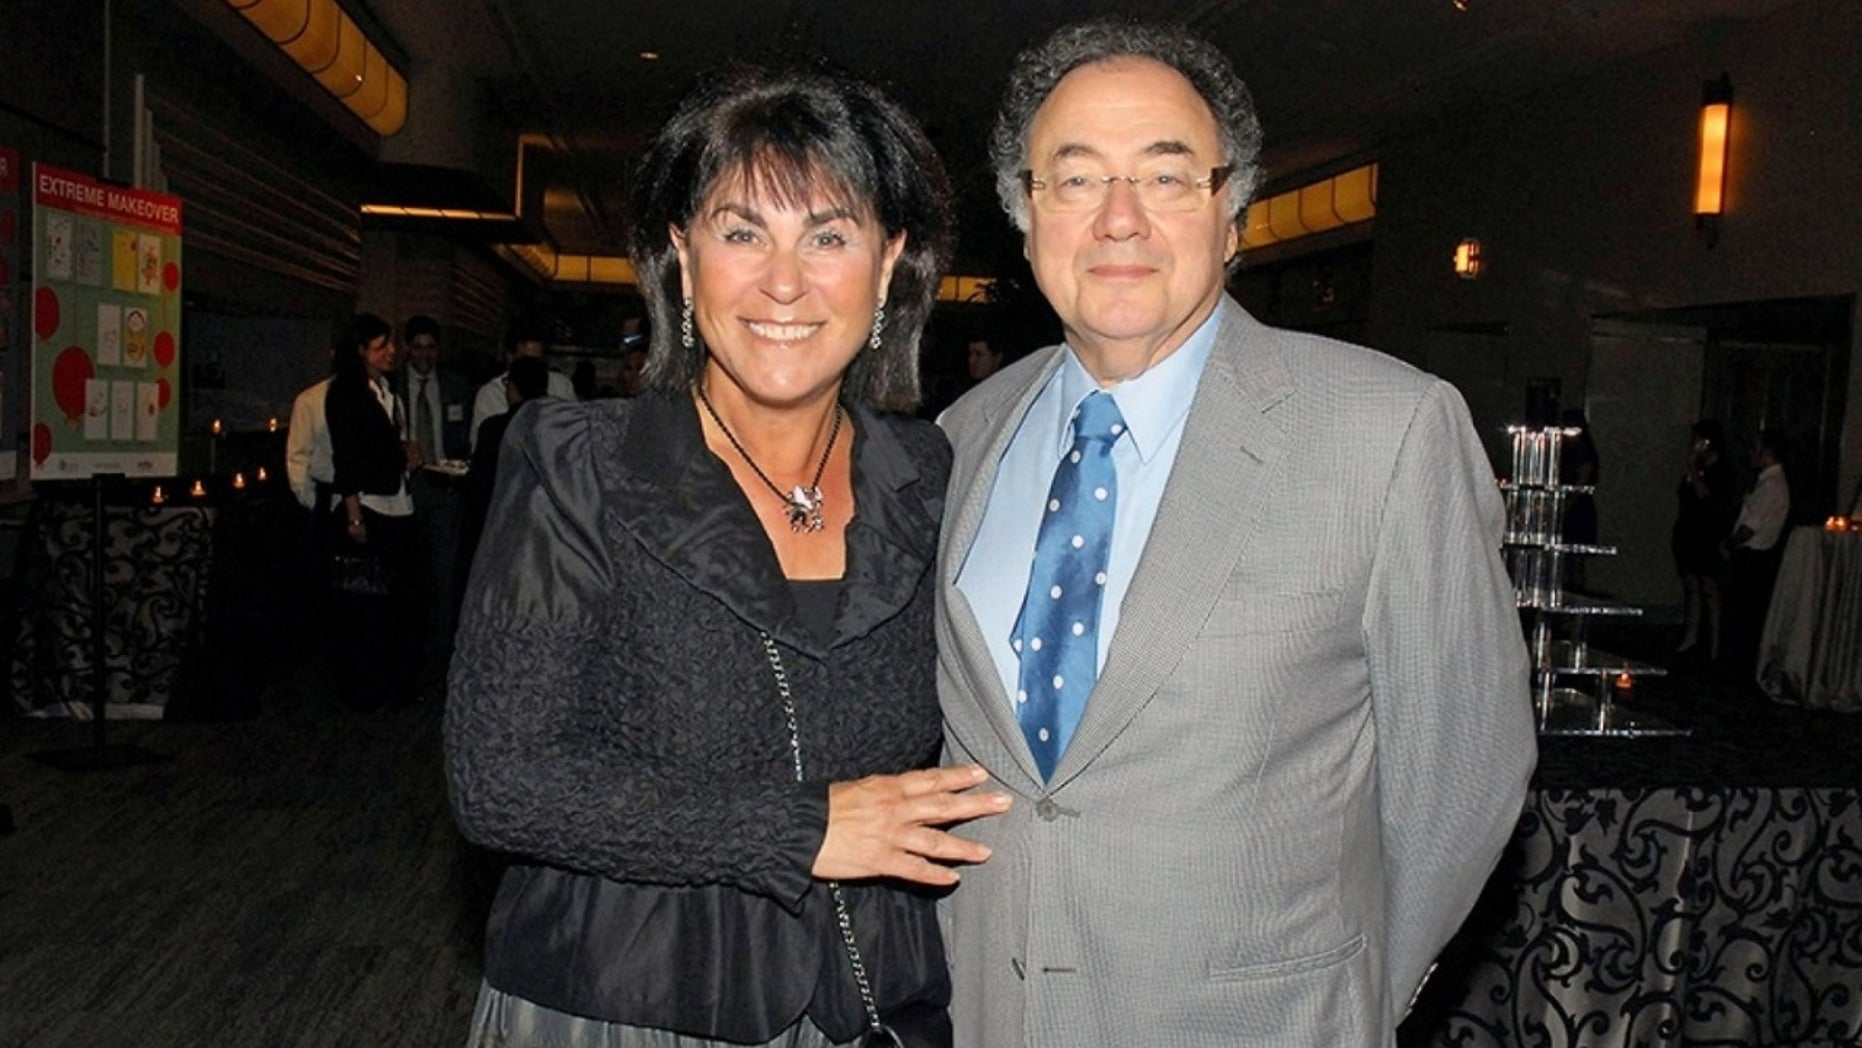 Barry Sherman, Chairman and CEO of Apotex Inc., and his philanthropist wife, Honey, were found dead in their mansion north of Toronto on Dec. 15.